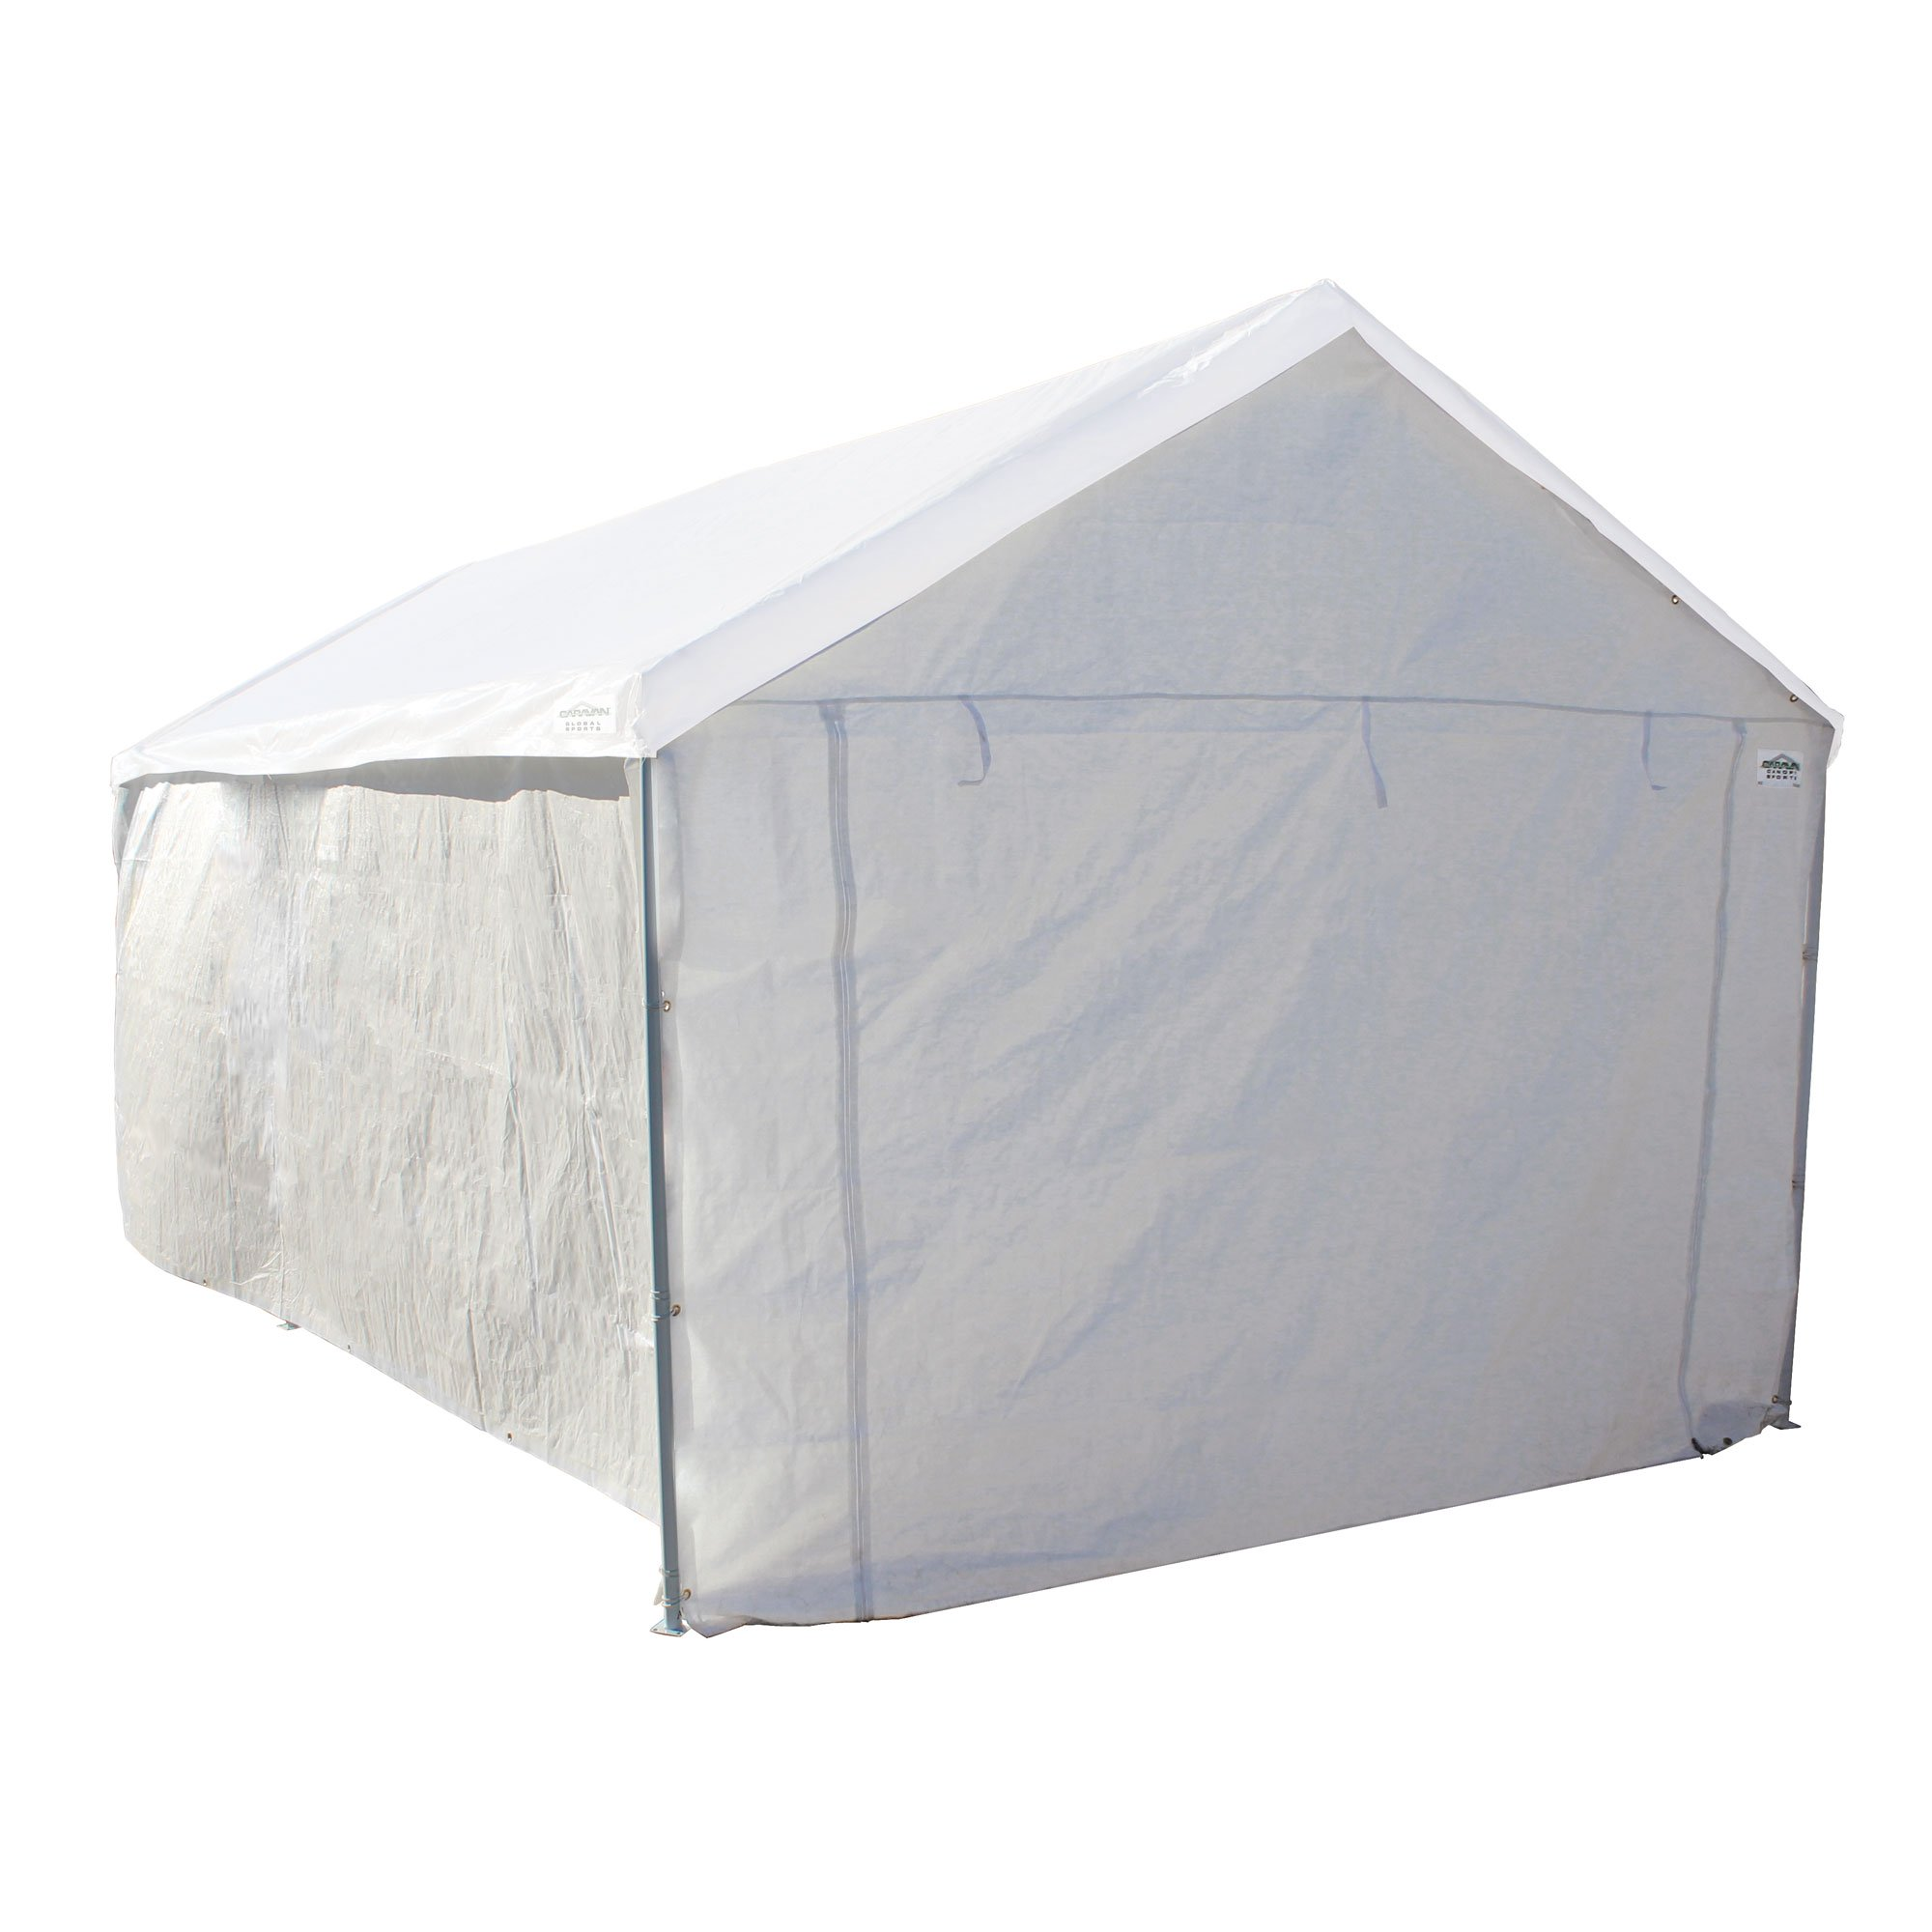 Caravan Canopy Sports 10'x20' Domain Carport Garage Sidewall/Enclosure Kit (Frame and Top Not Included)